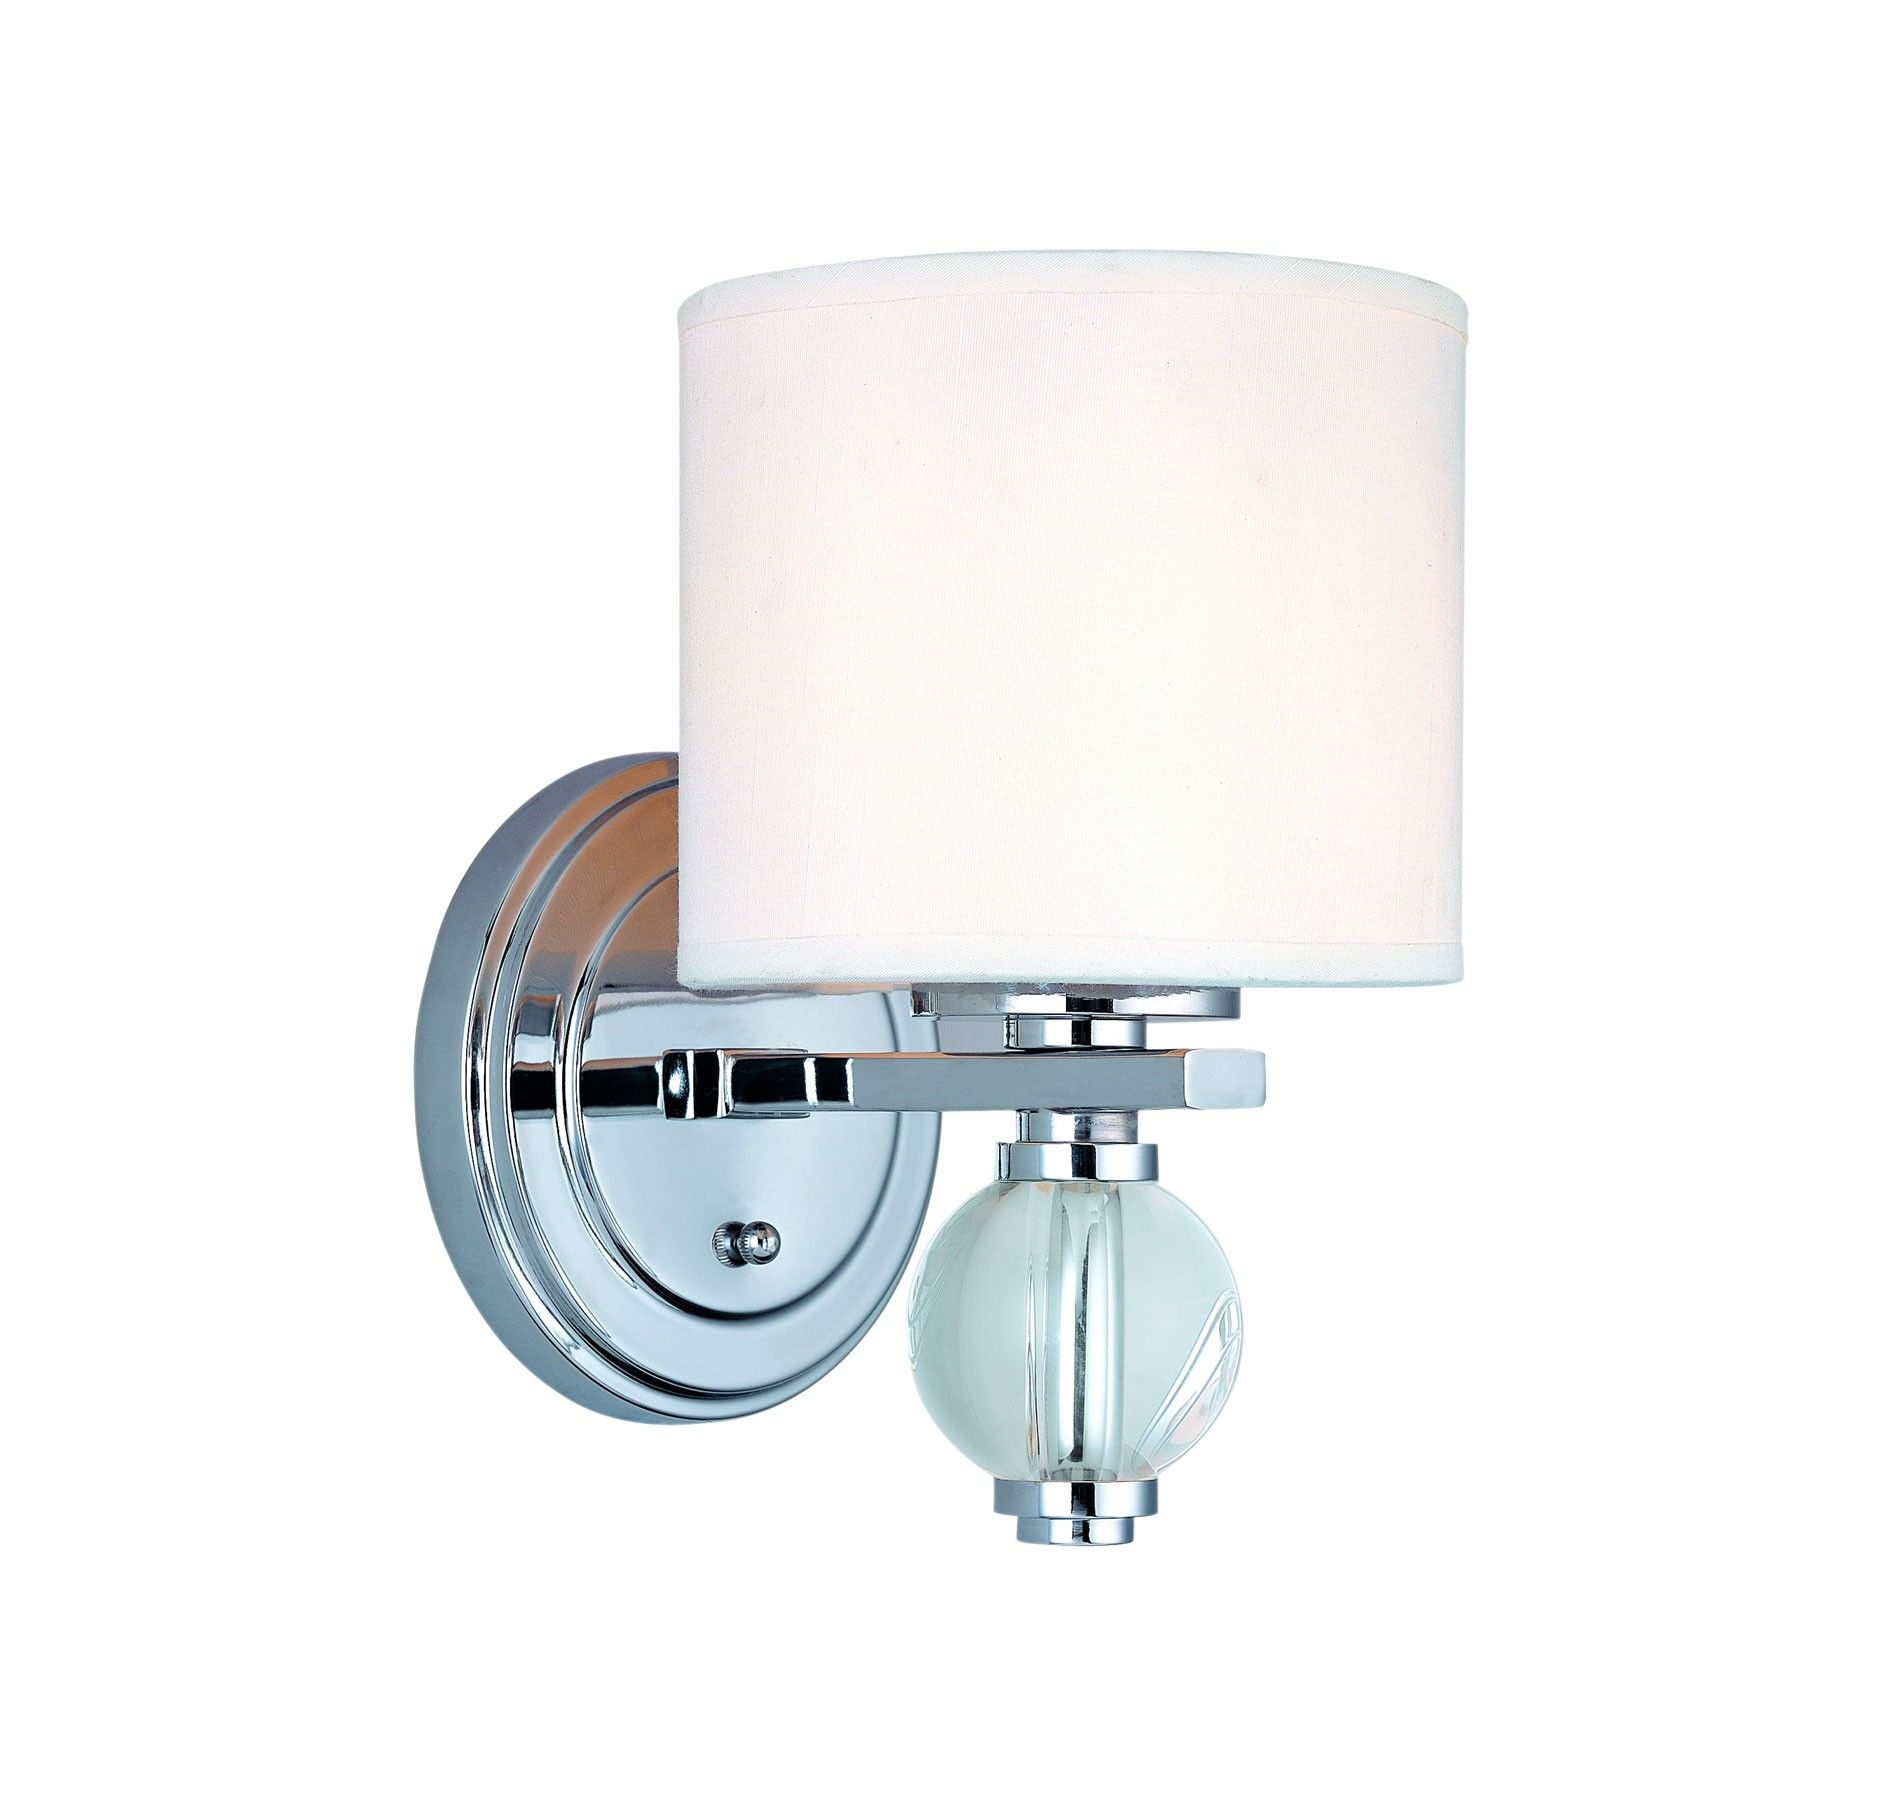 Bathroom Lighting Brands troy lighting bentley 1 light wall sconce in brands, troy lighting